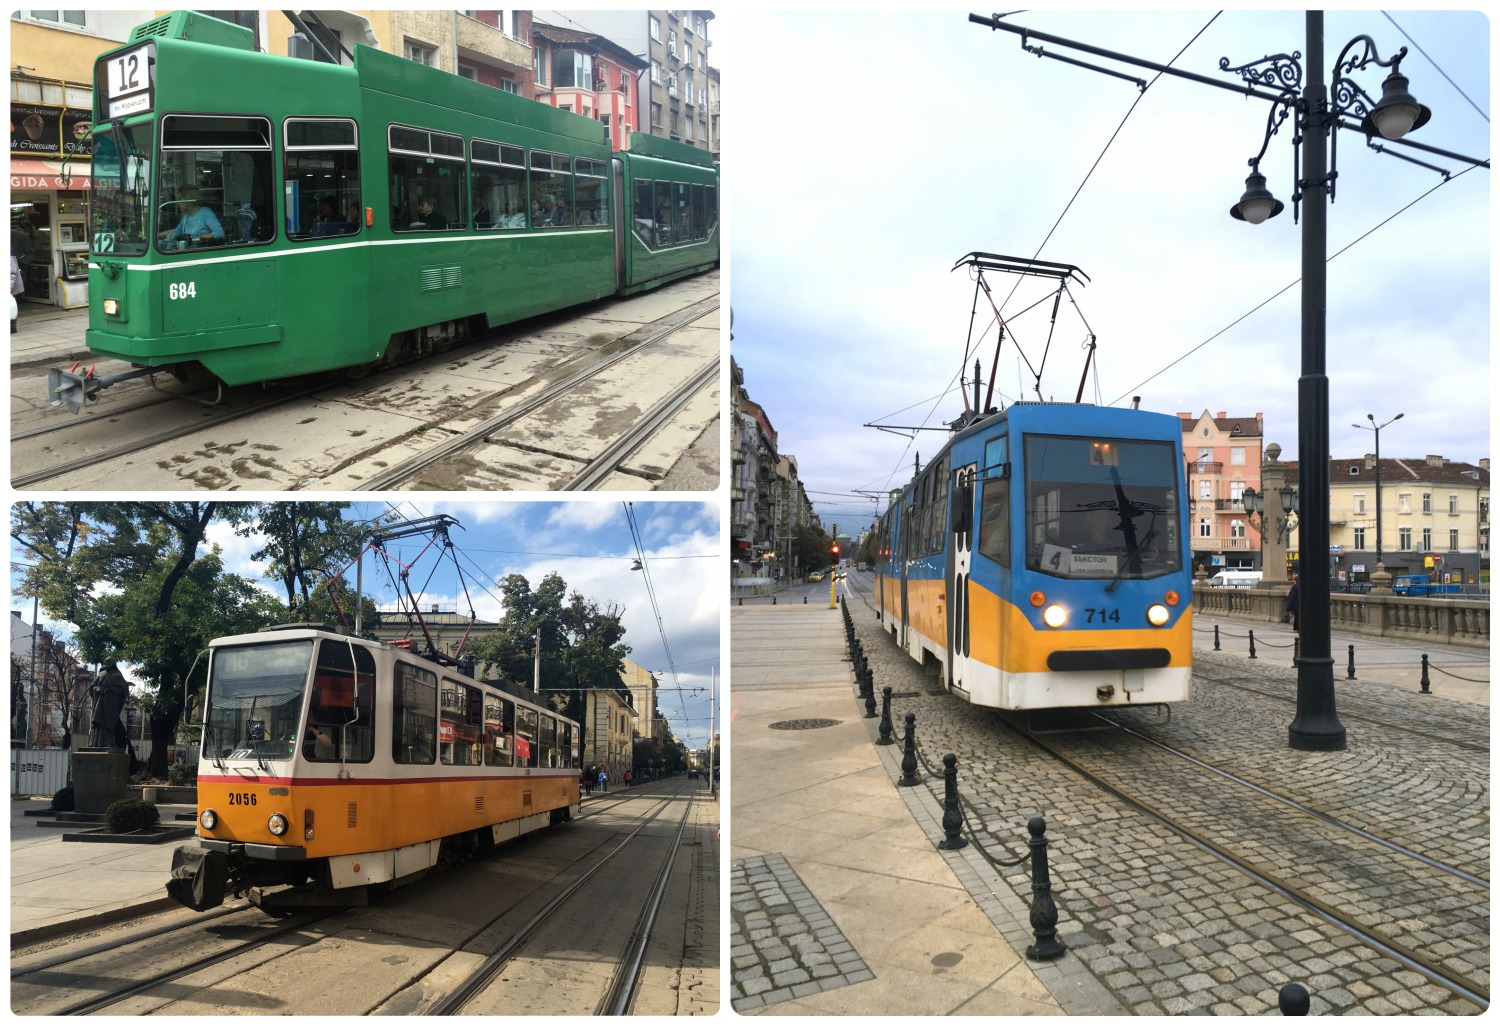 Sofia, Bulgaria trams vary in color and age.